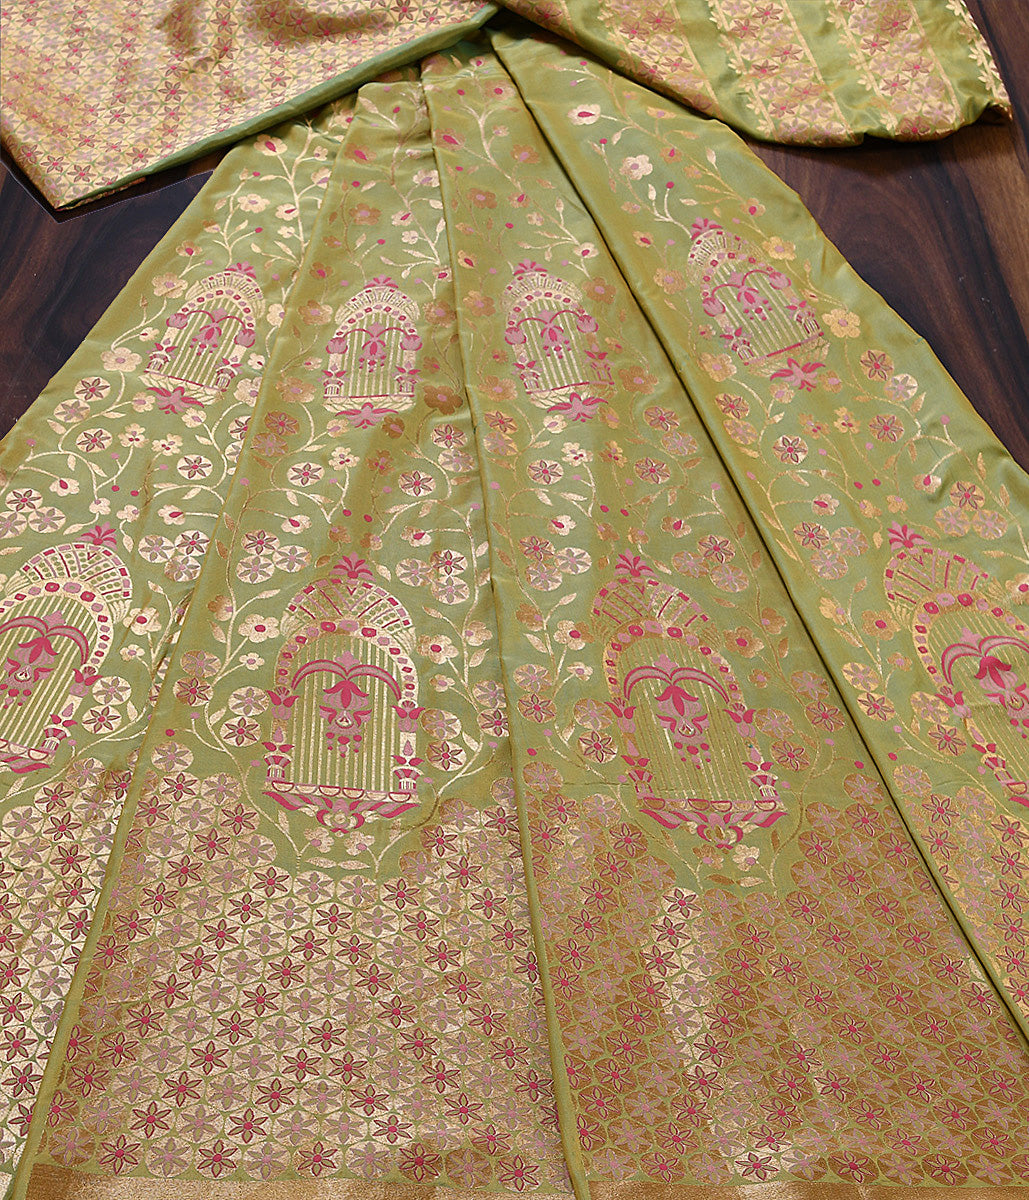 Handwoven Banarasi Lehenga in Green and Yellow Dual Tone with Meenakari